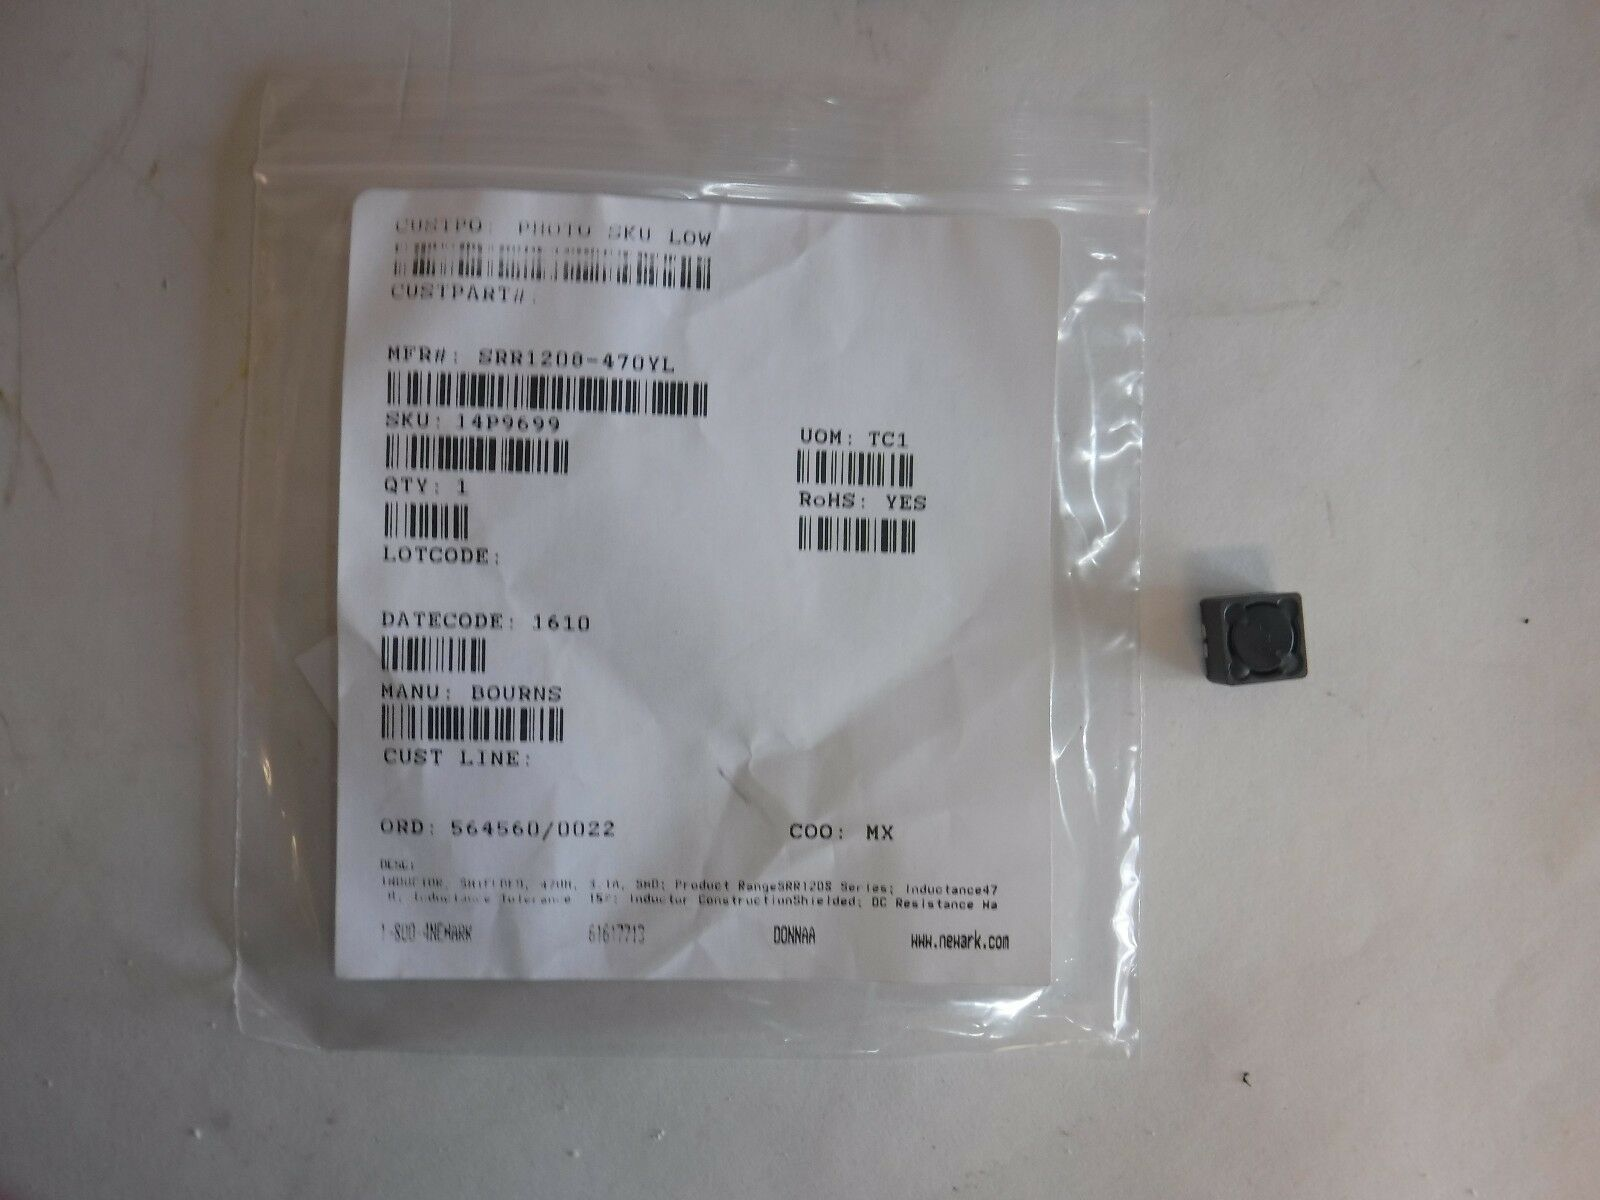 NEW BOURNS SRR1208-470YL Surface Mount Power Inductor (T)